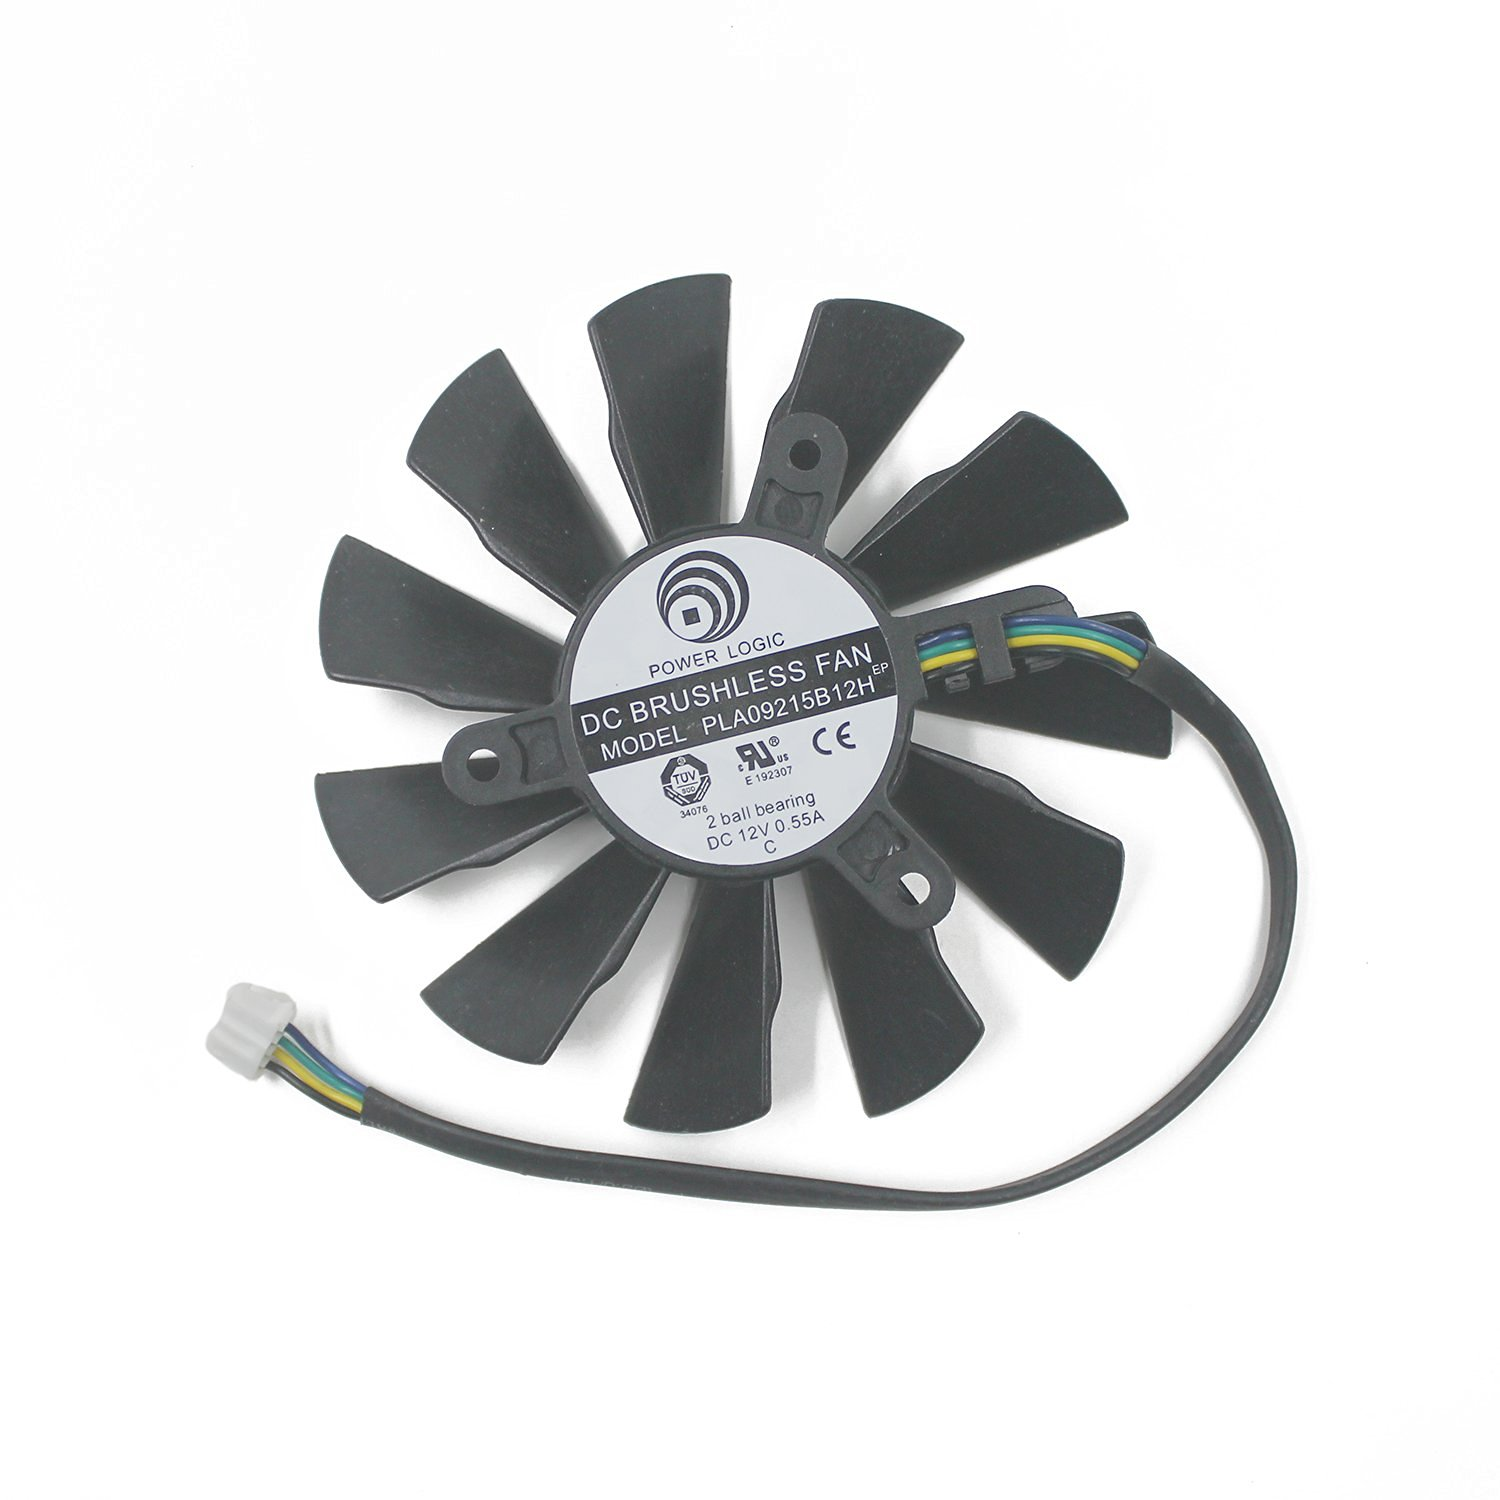 TOMUM PLA09215B12H DC Graphicss Card Fan 12V 0.55A 87mm For N560 570 580GTX HD6870 87mm Cooling Fan Cooler